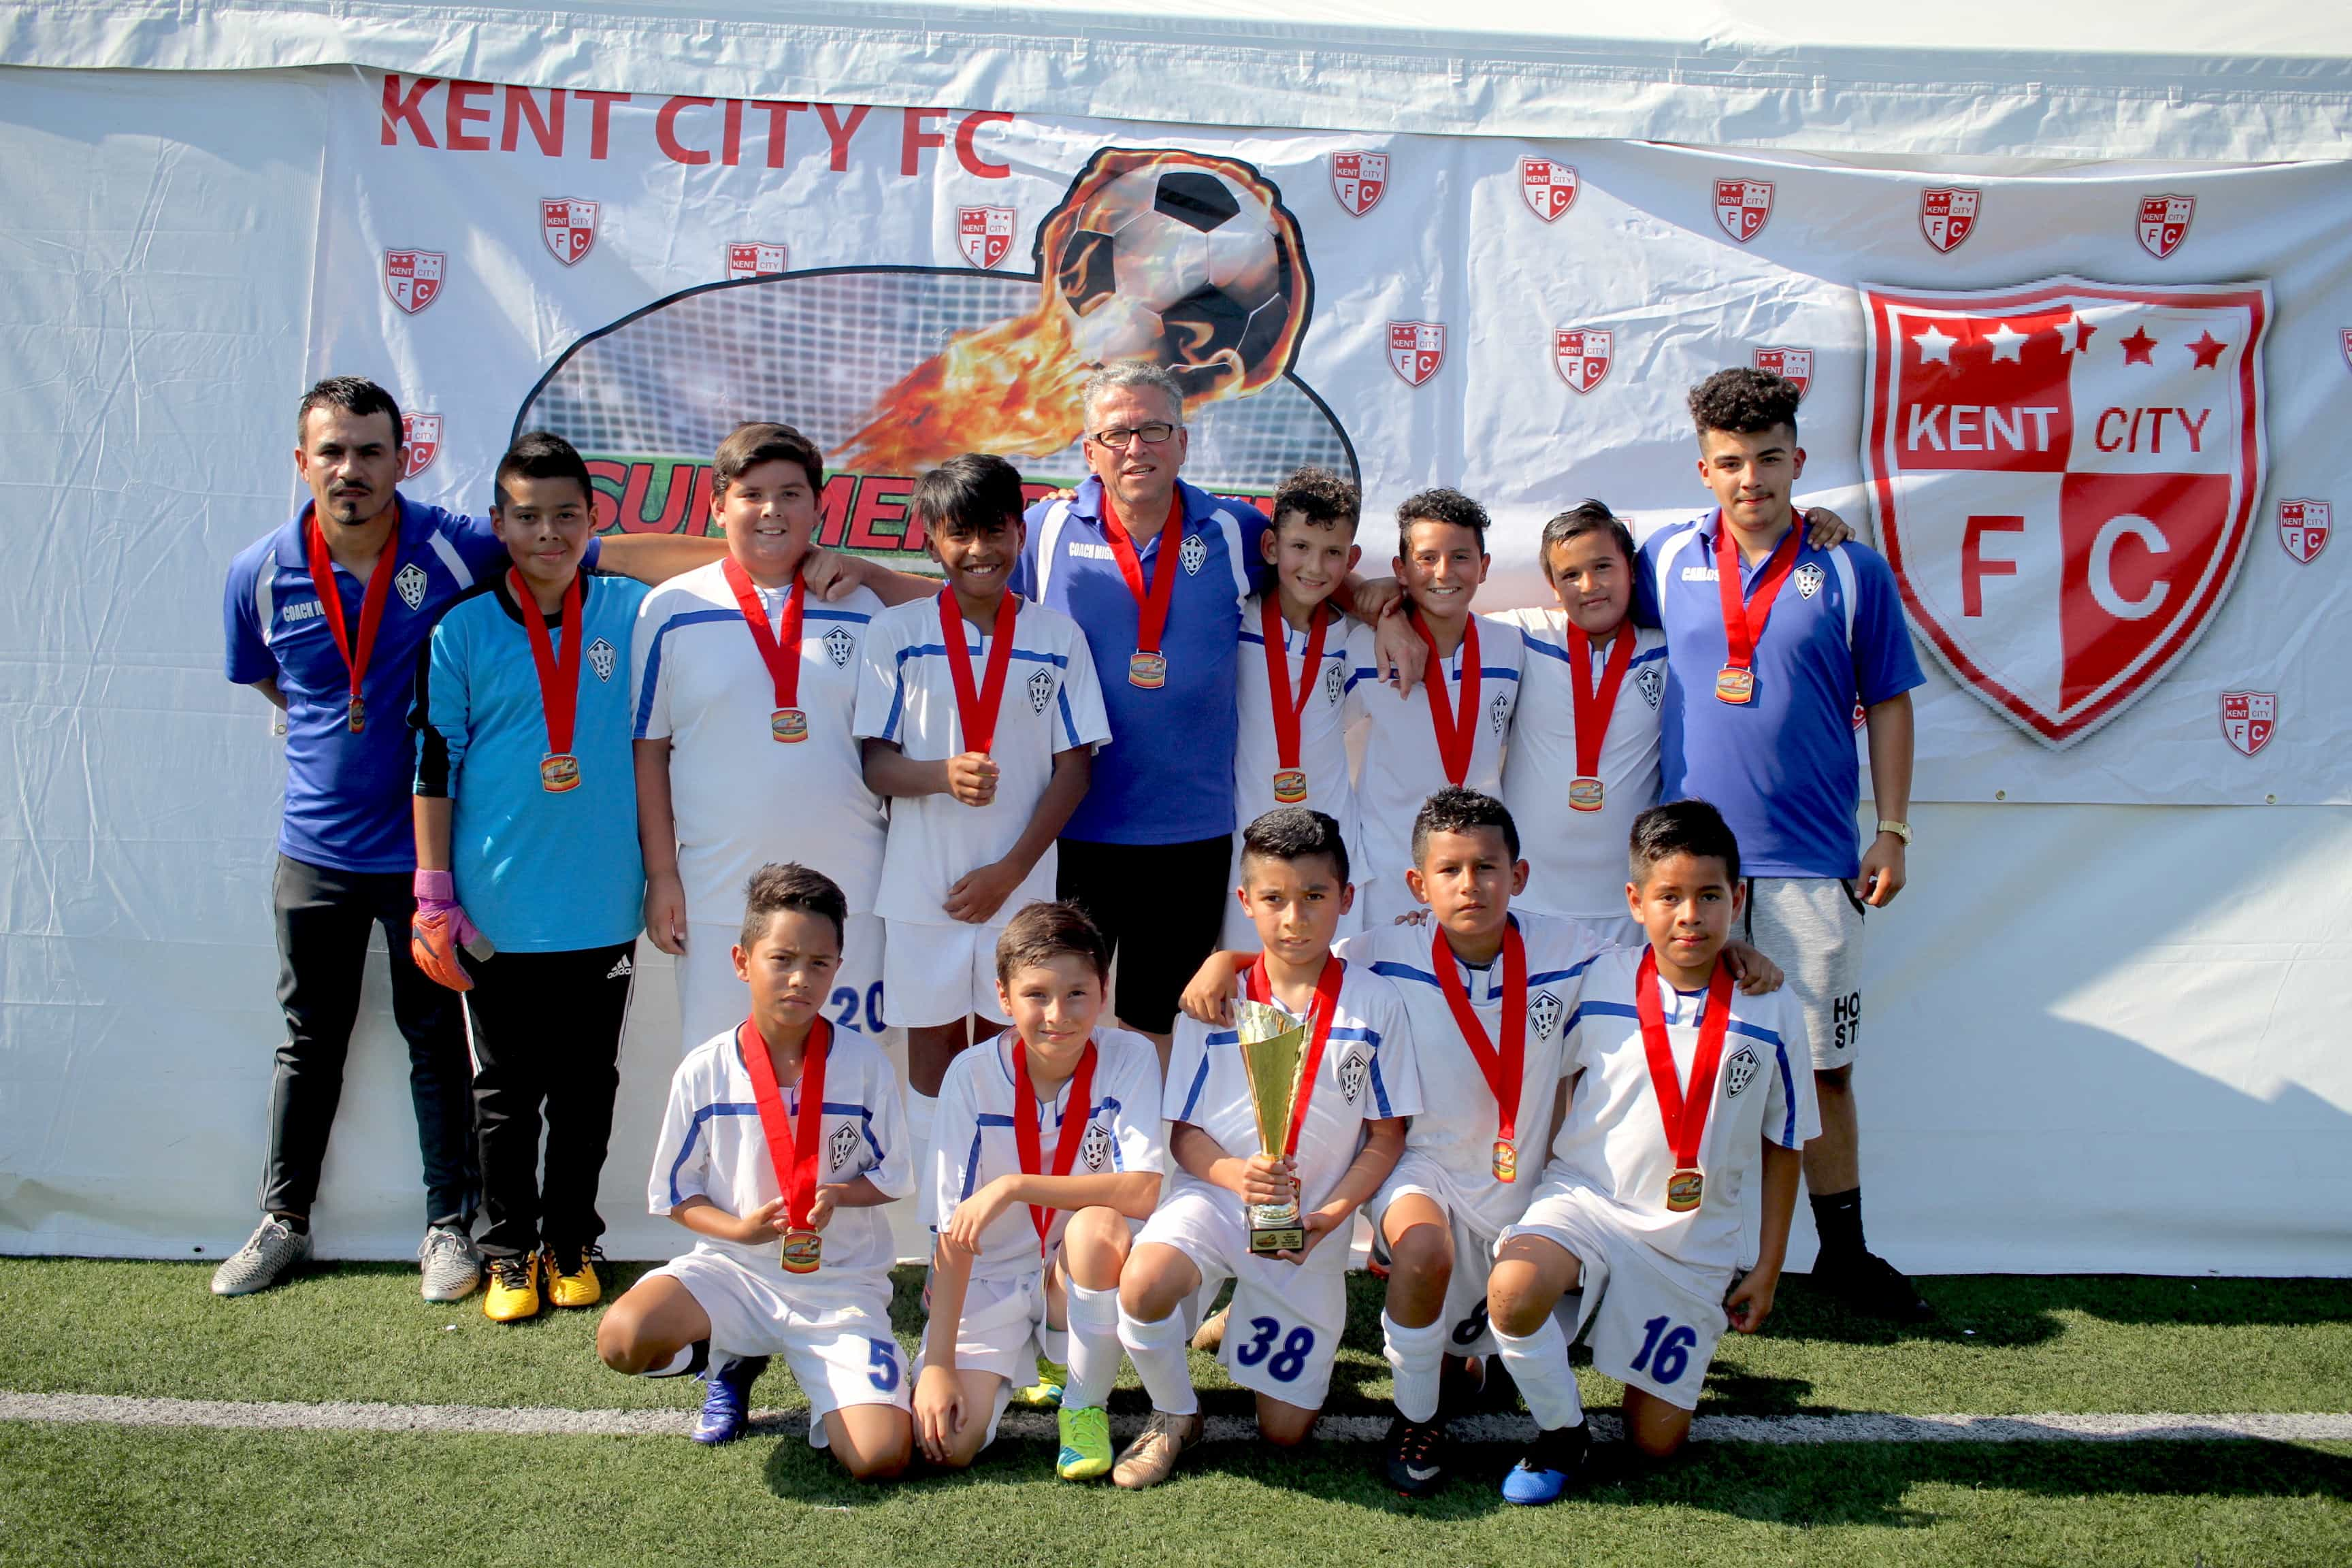 BU12 Red Champions - Seattle Eagles 06